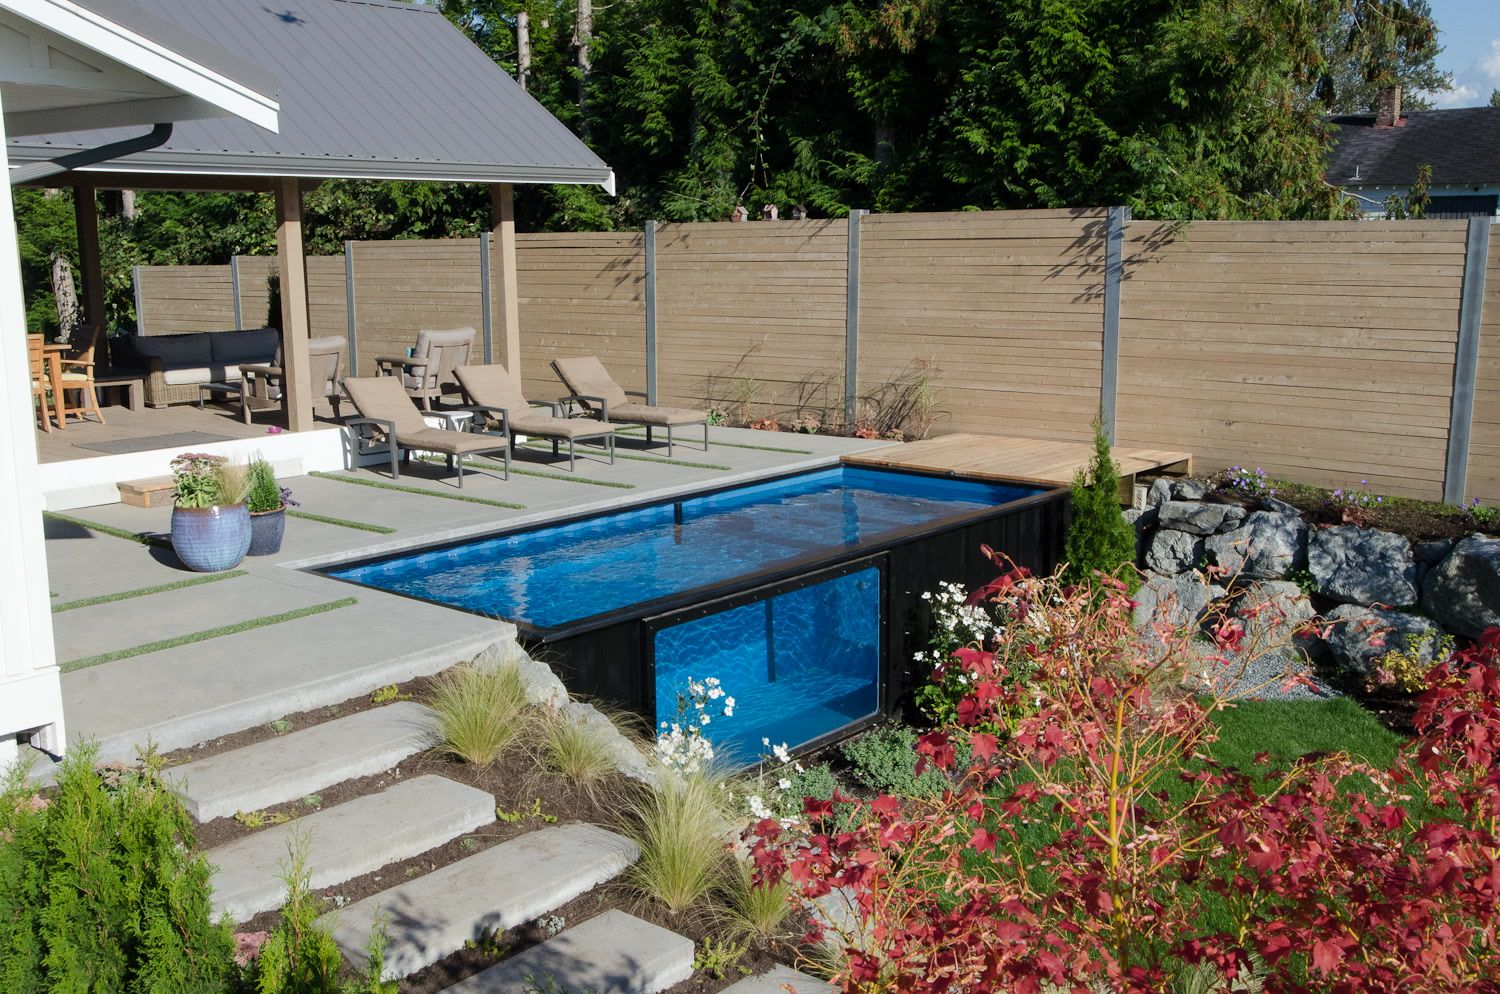 This Shipping Container Pool Can Be Installed Anywhere In Minutes